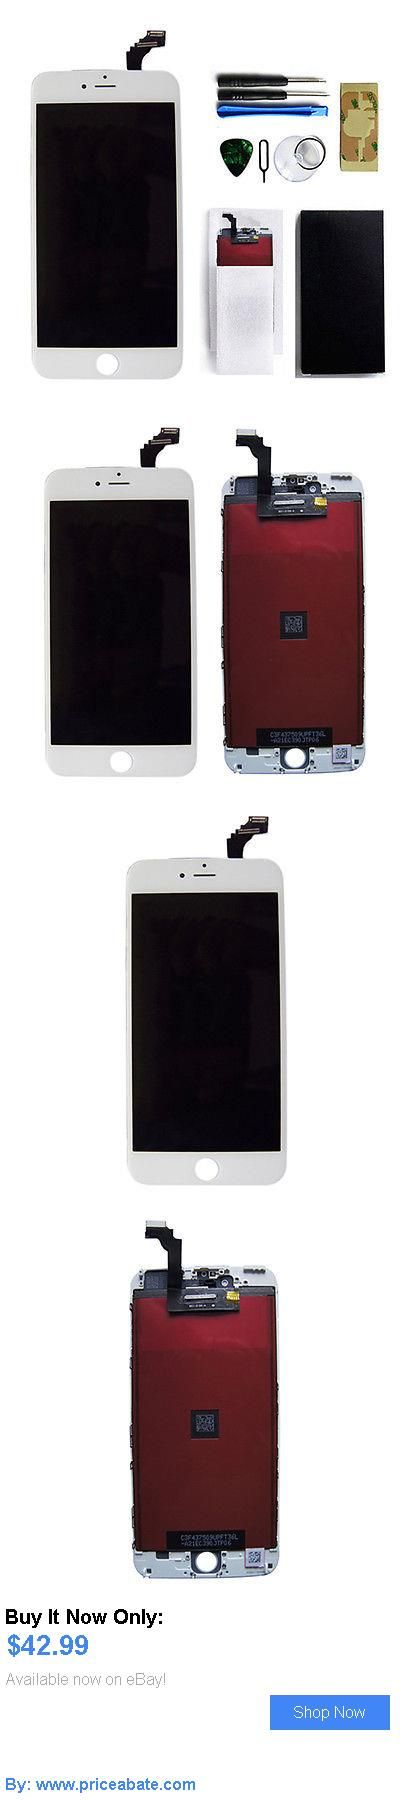 general for sale: White Lcd Display Touch Screen Digitizer Assembly For Iphone 6 Plus 5.5 Oem BUY IT NOW ONLY: $42.99 #priceabategeneralforsale OR #priceabate